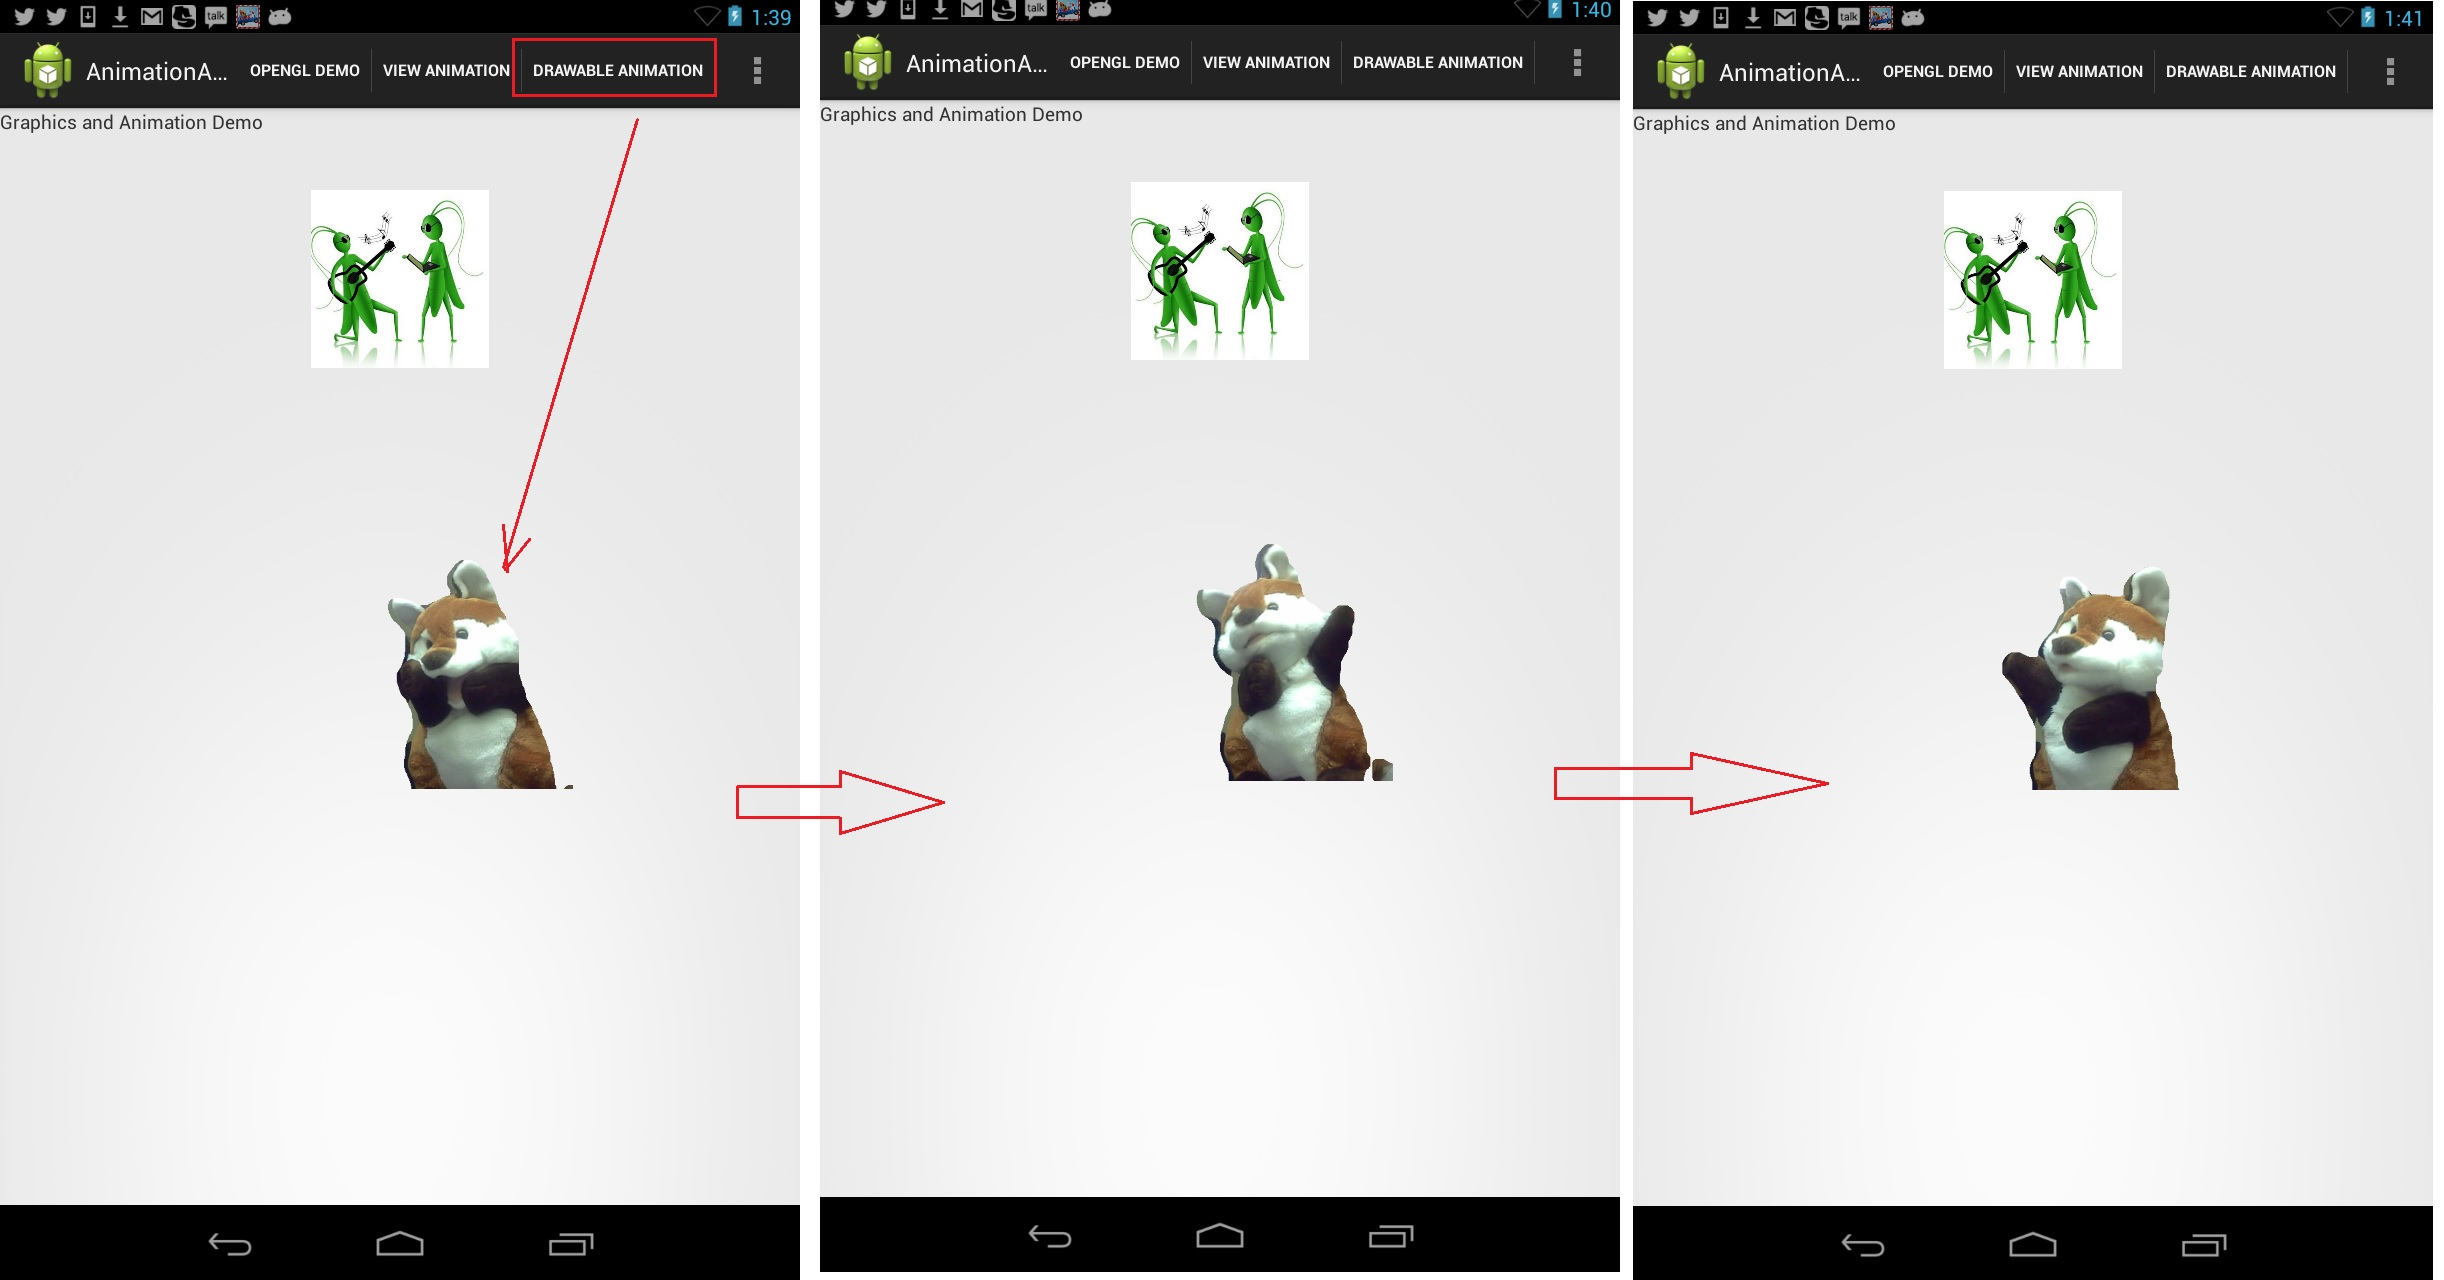 Article 11 - Beginner's Guide to Android Animation/Graphics